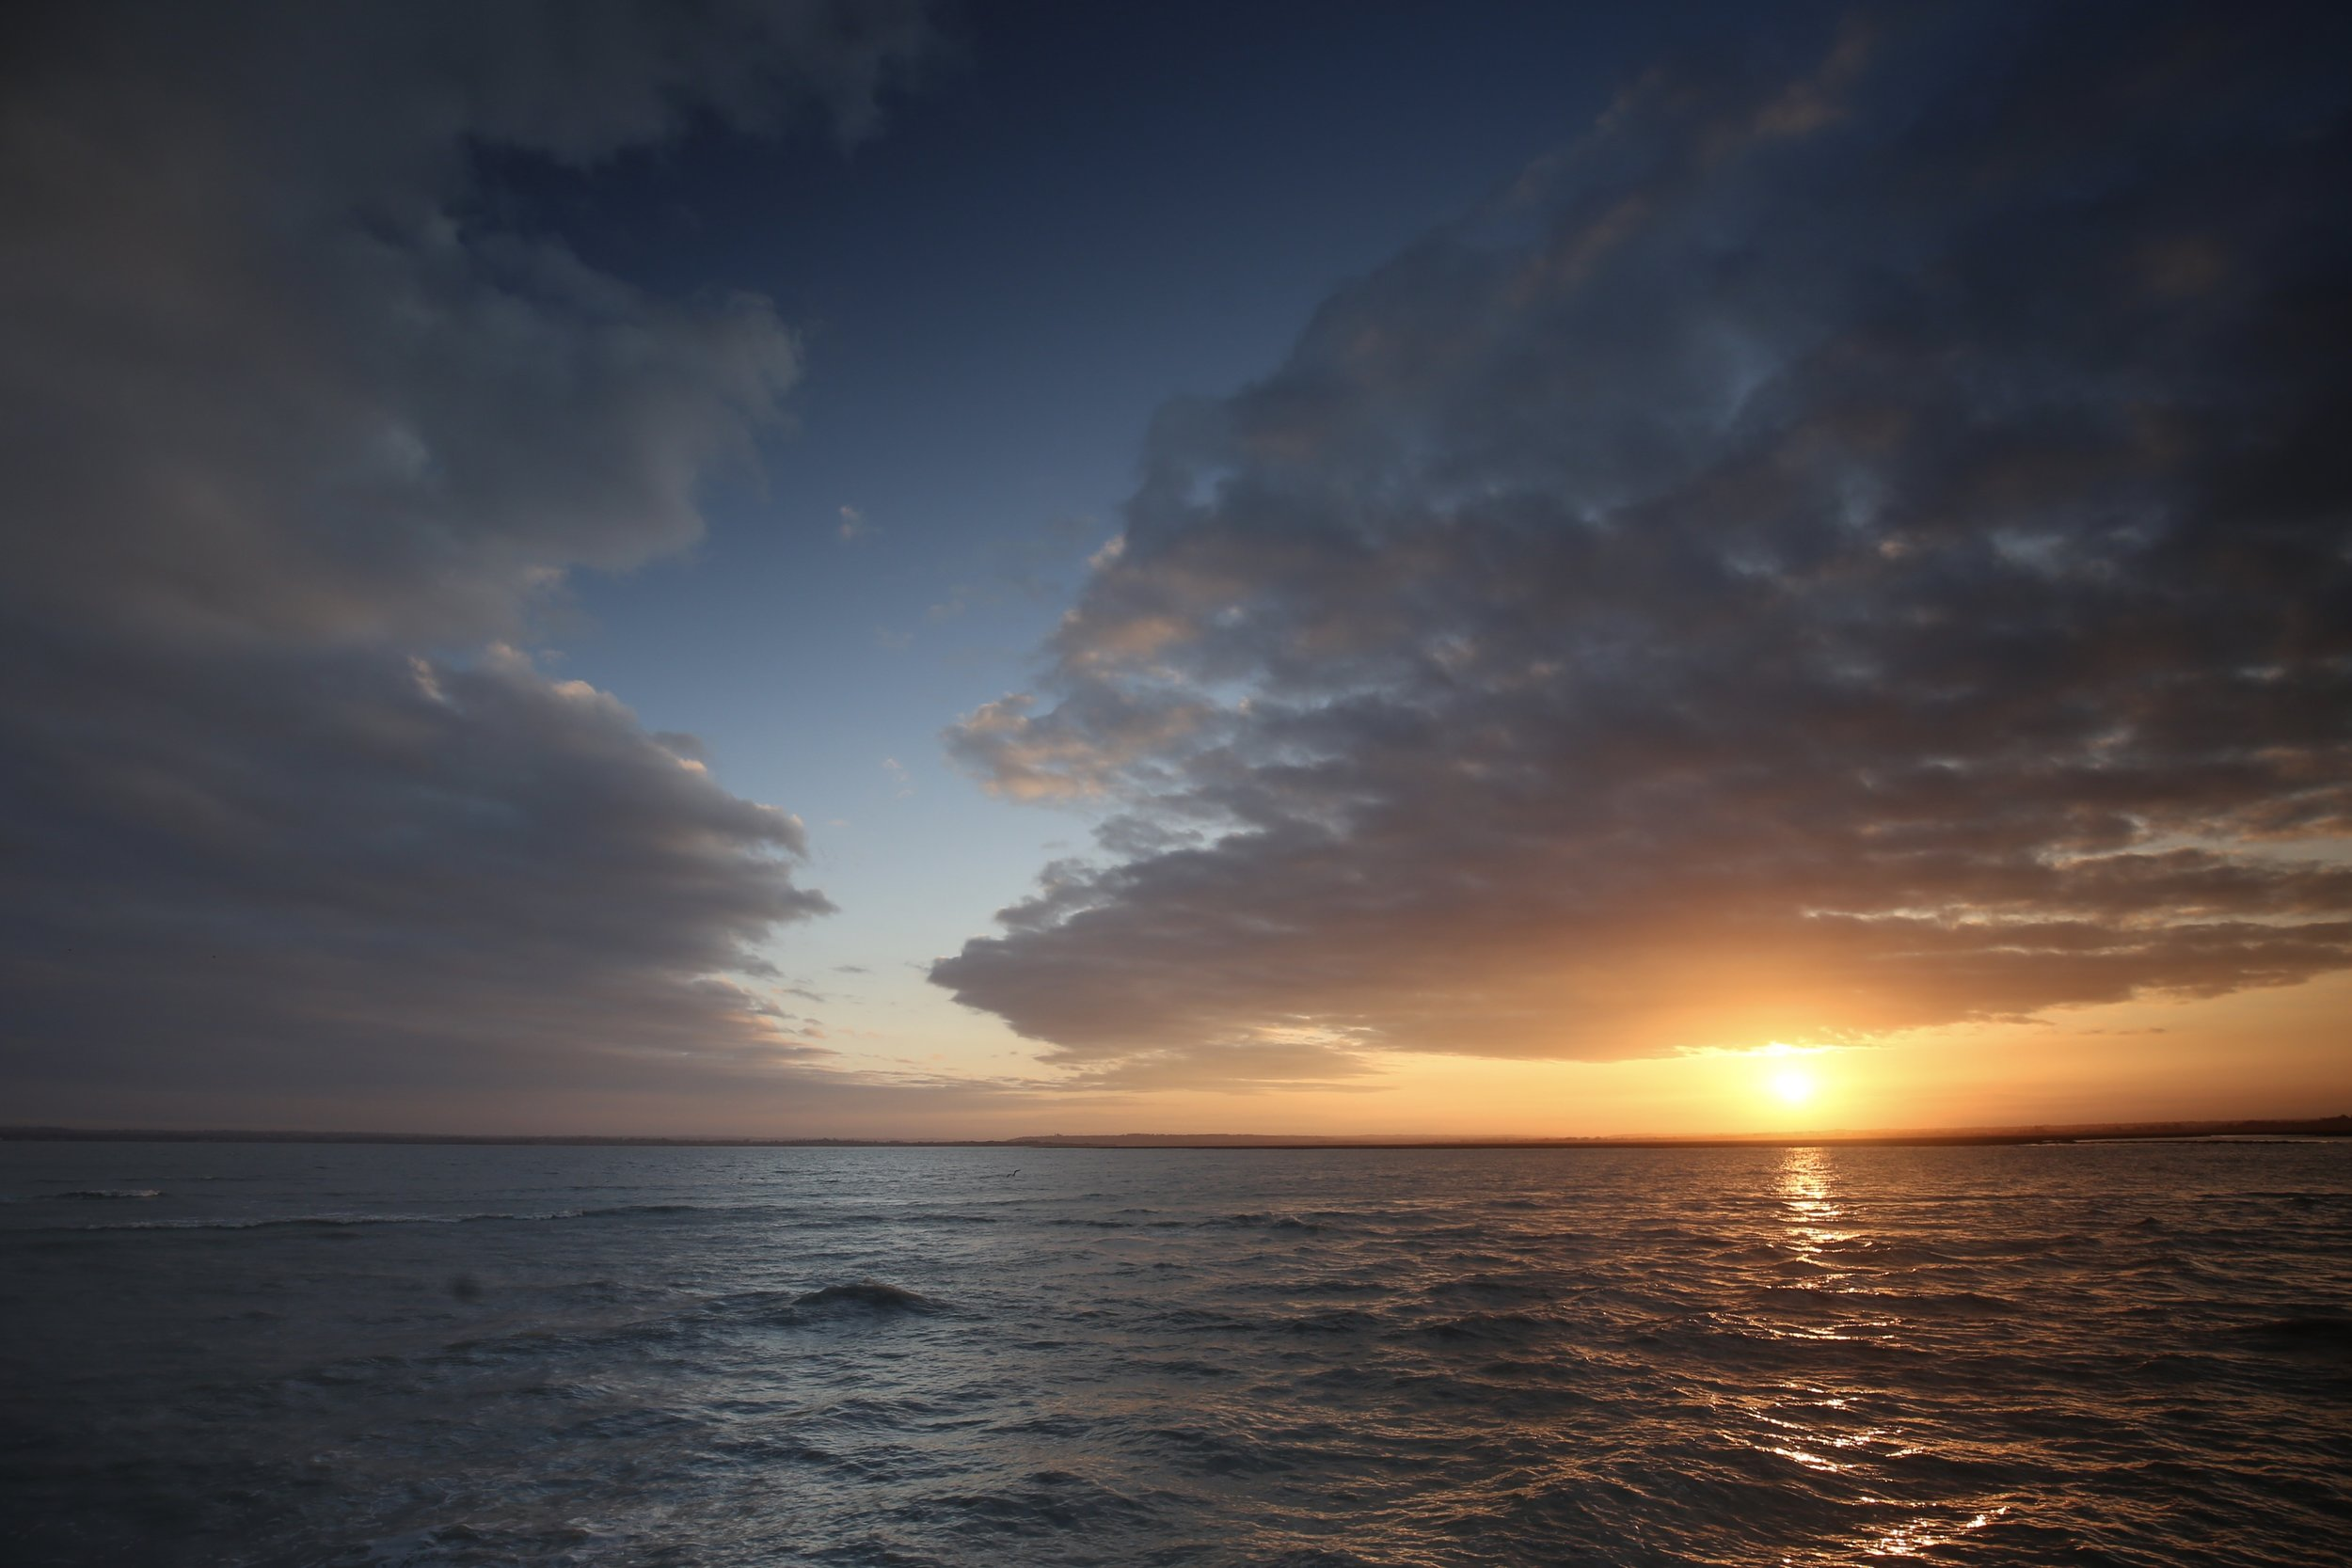 Sunrise over the sea with a break in the clouds.